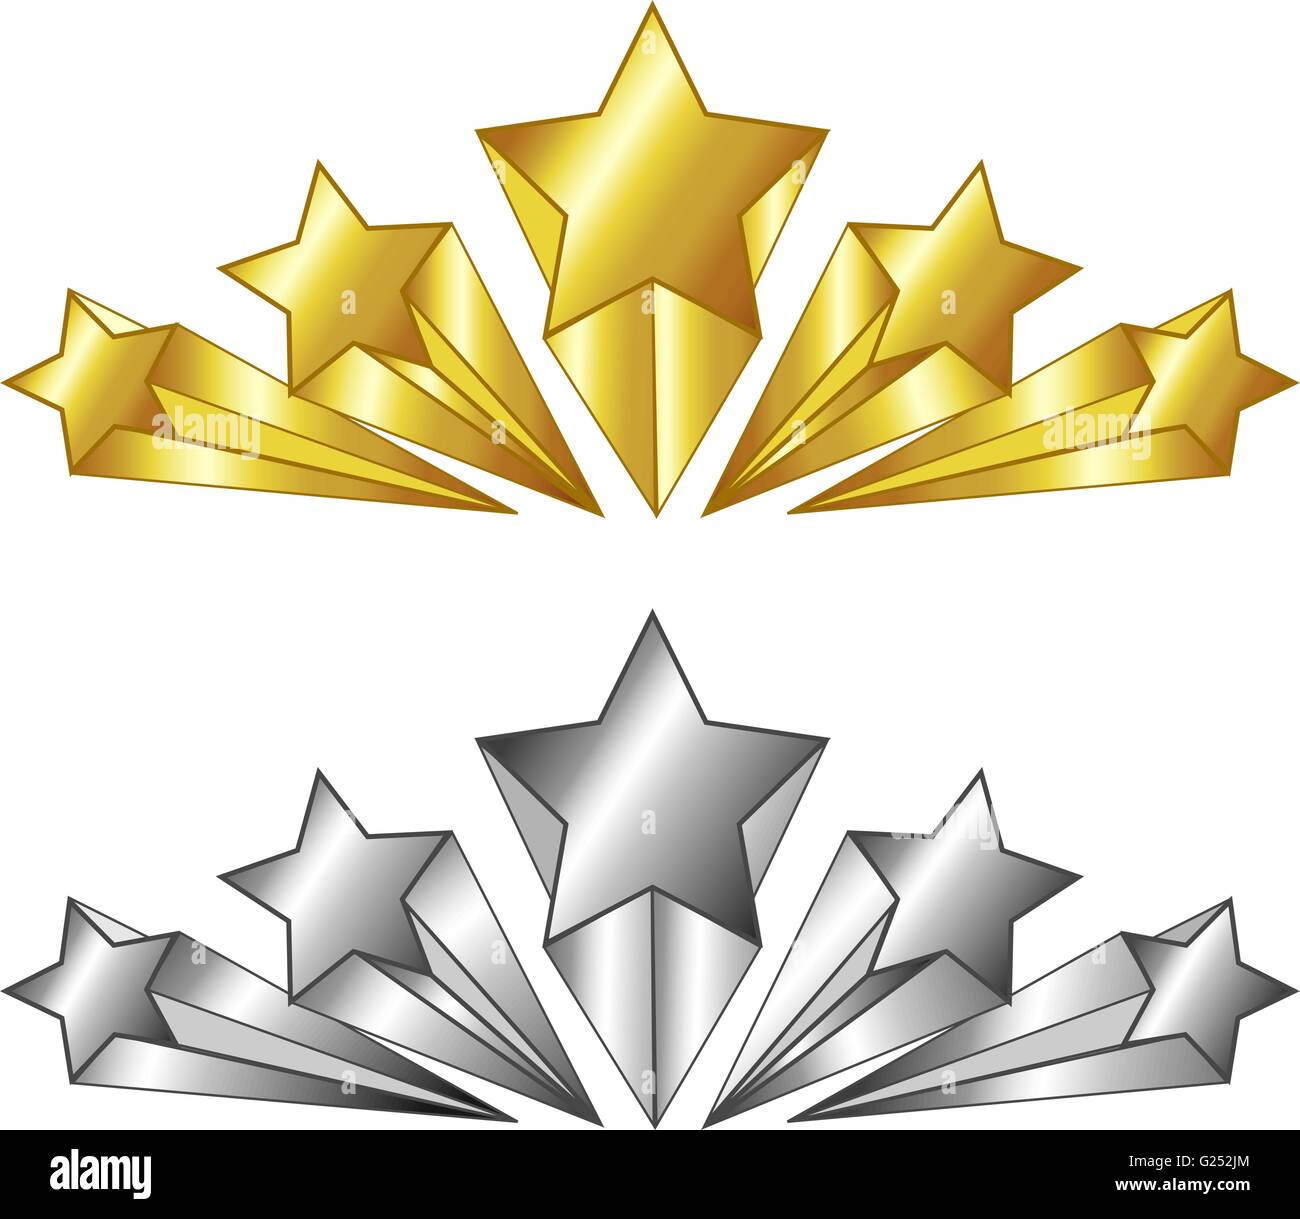 vector 5 star symbol in gold and silver colors isolated